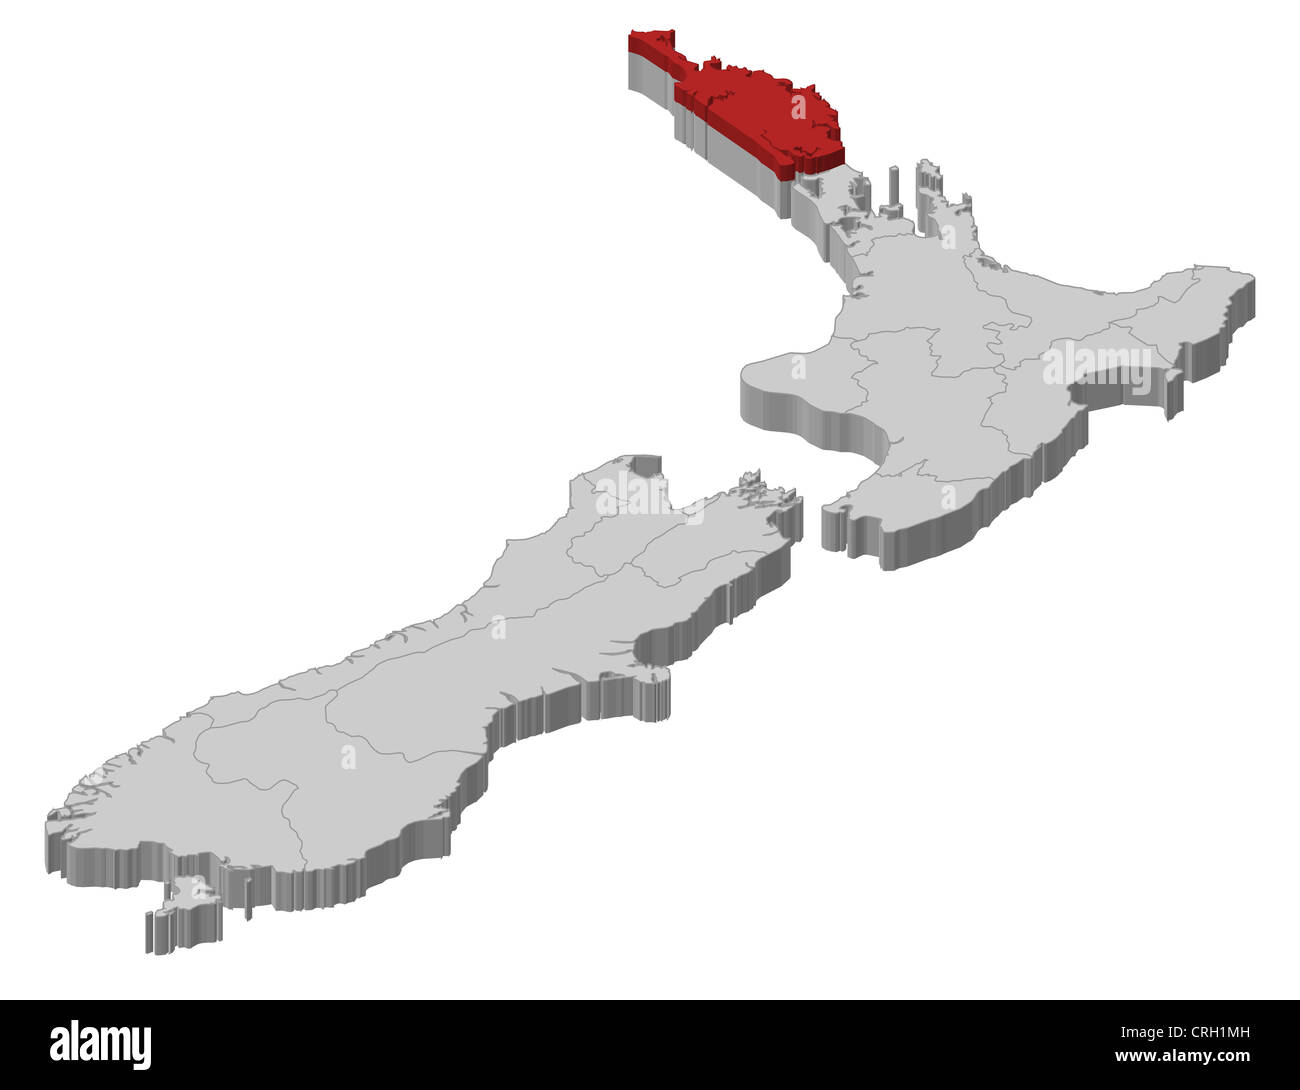 Northland New Zealand Map.Political Map Of New Zealand With The Several Regions Where